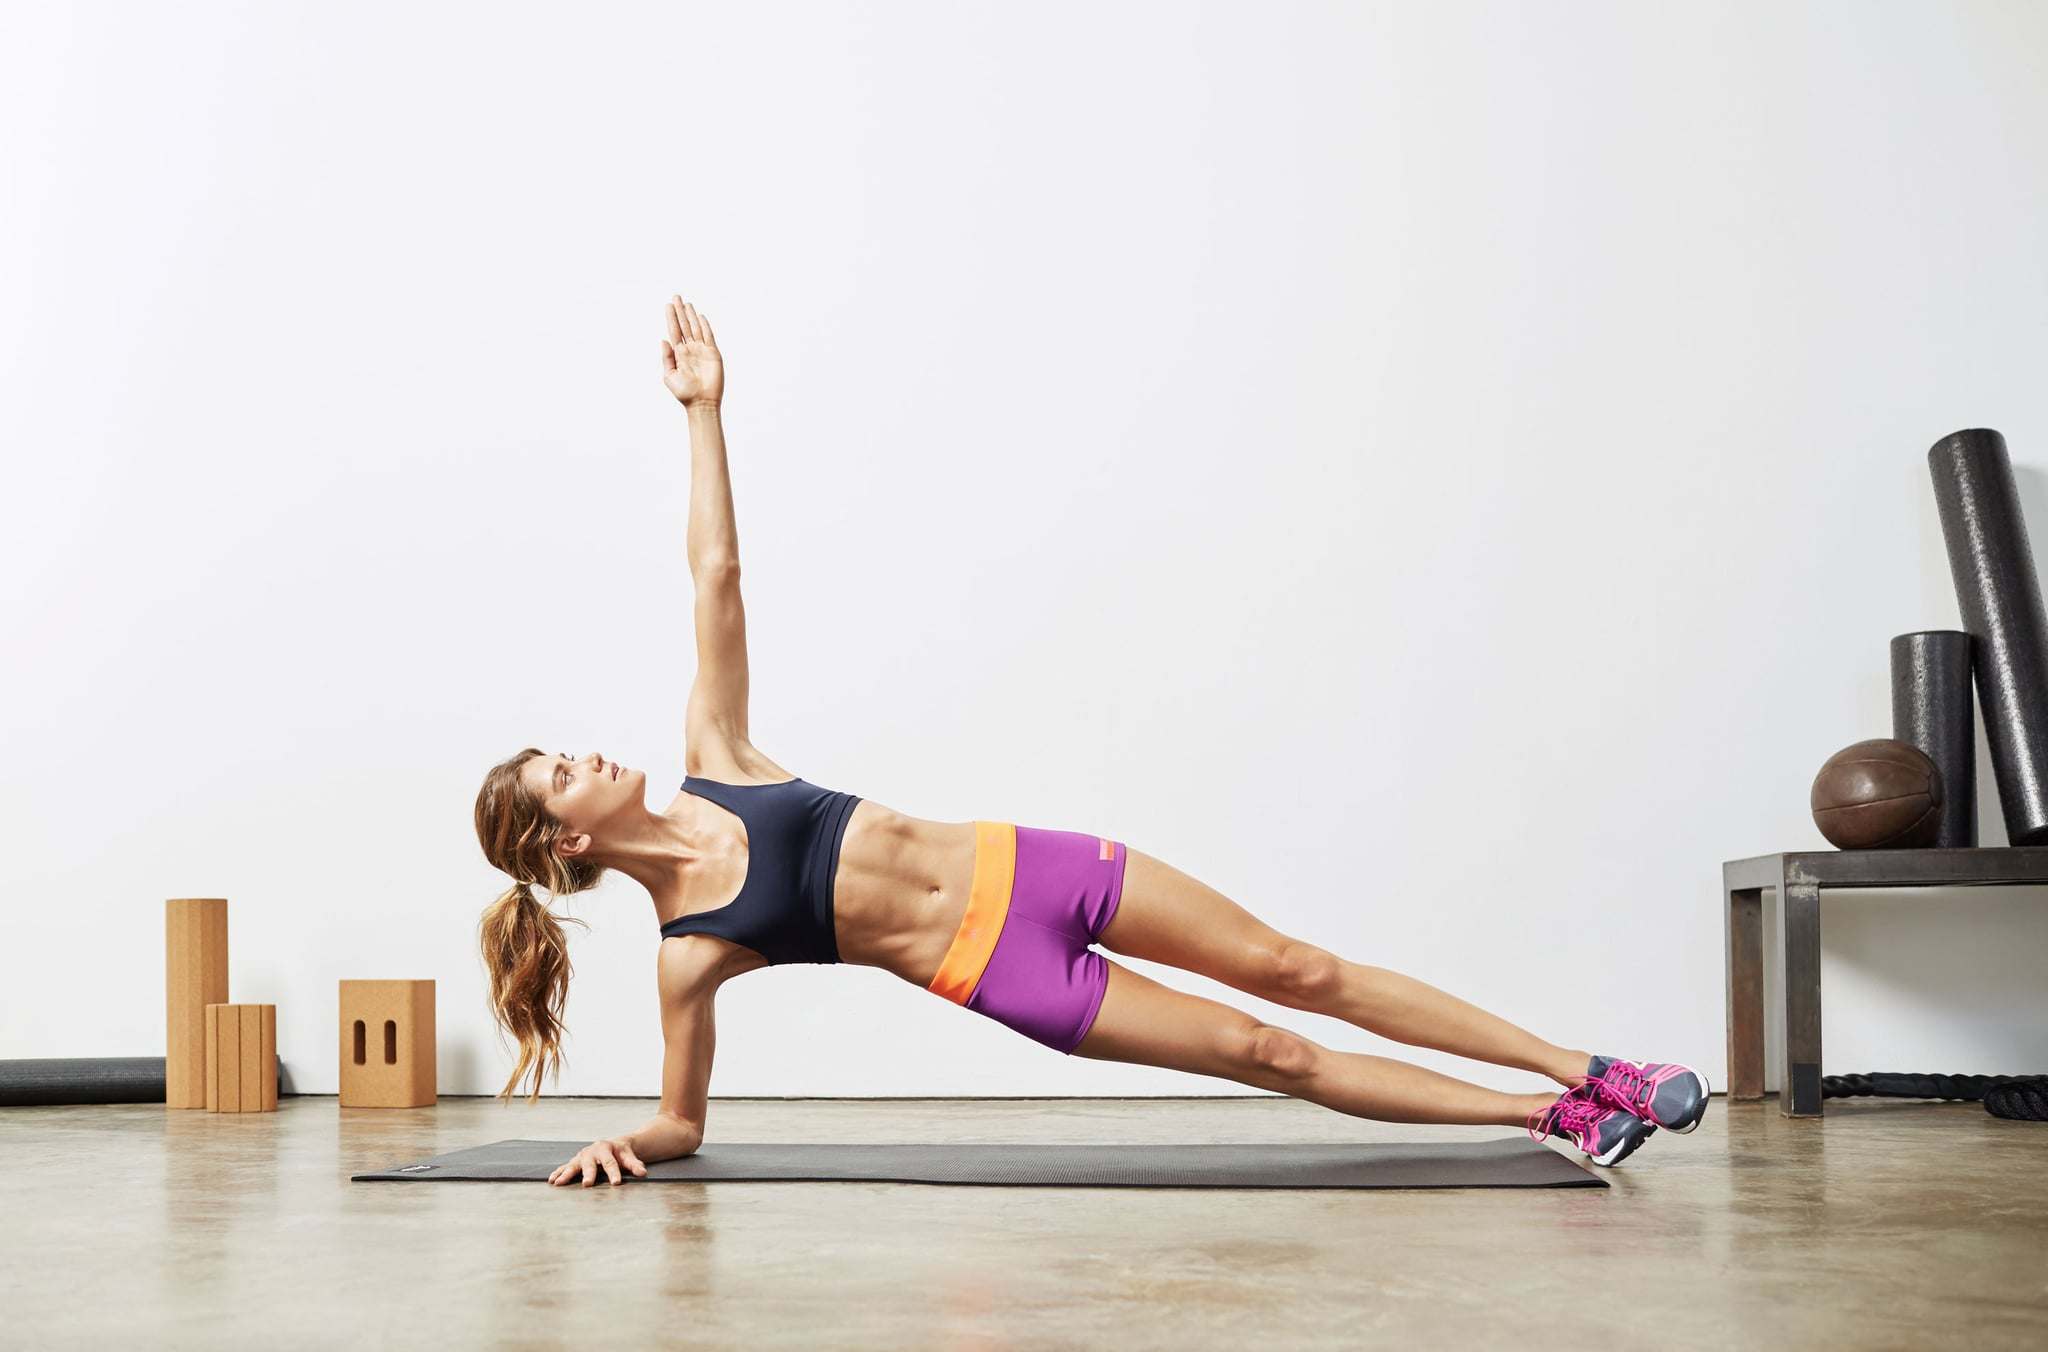 The 1 Thing Runners Need to Do (No, It's Not Stretch)